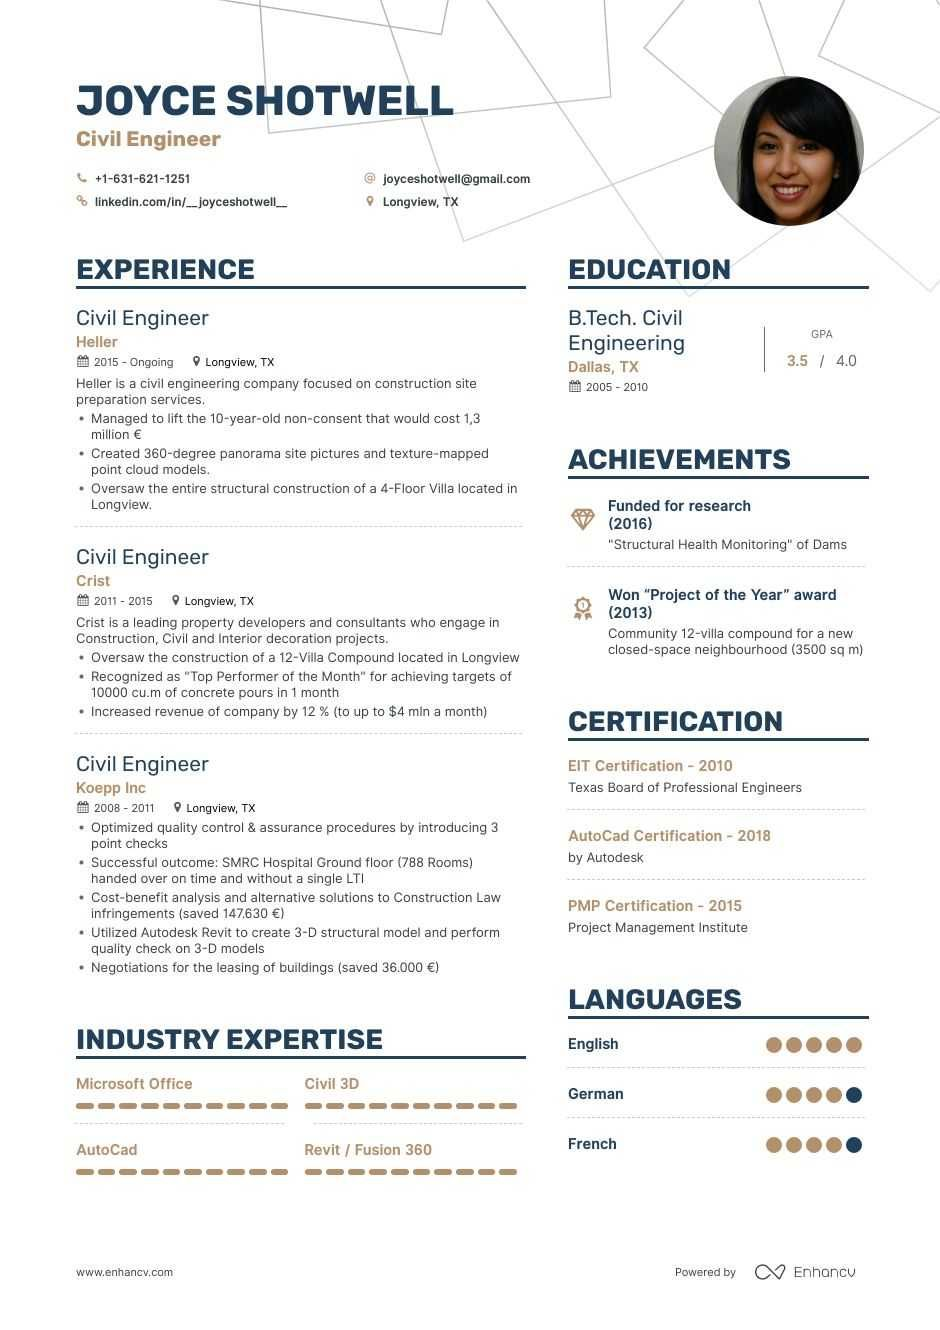 Civil Engineer Resume Examples Guide & Pro Tips Enhancv